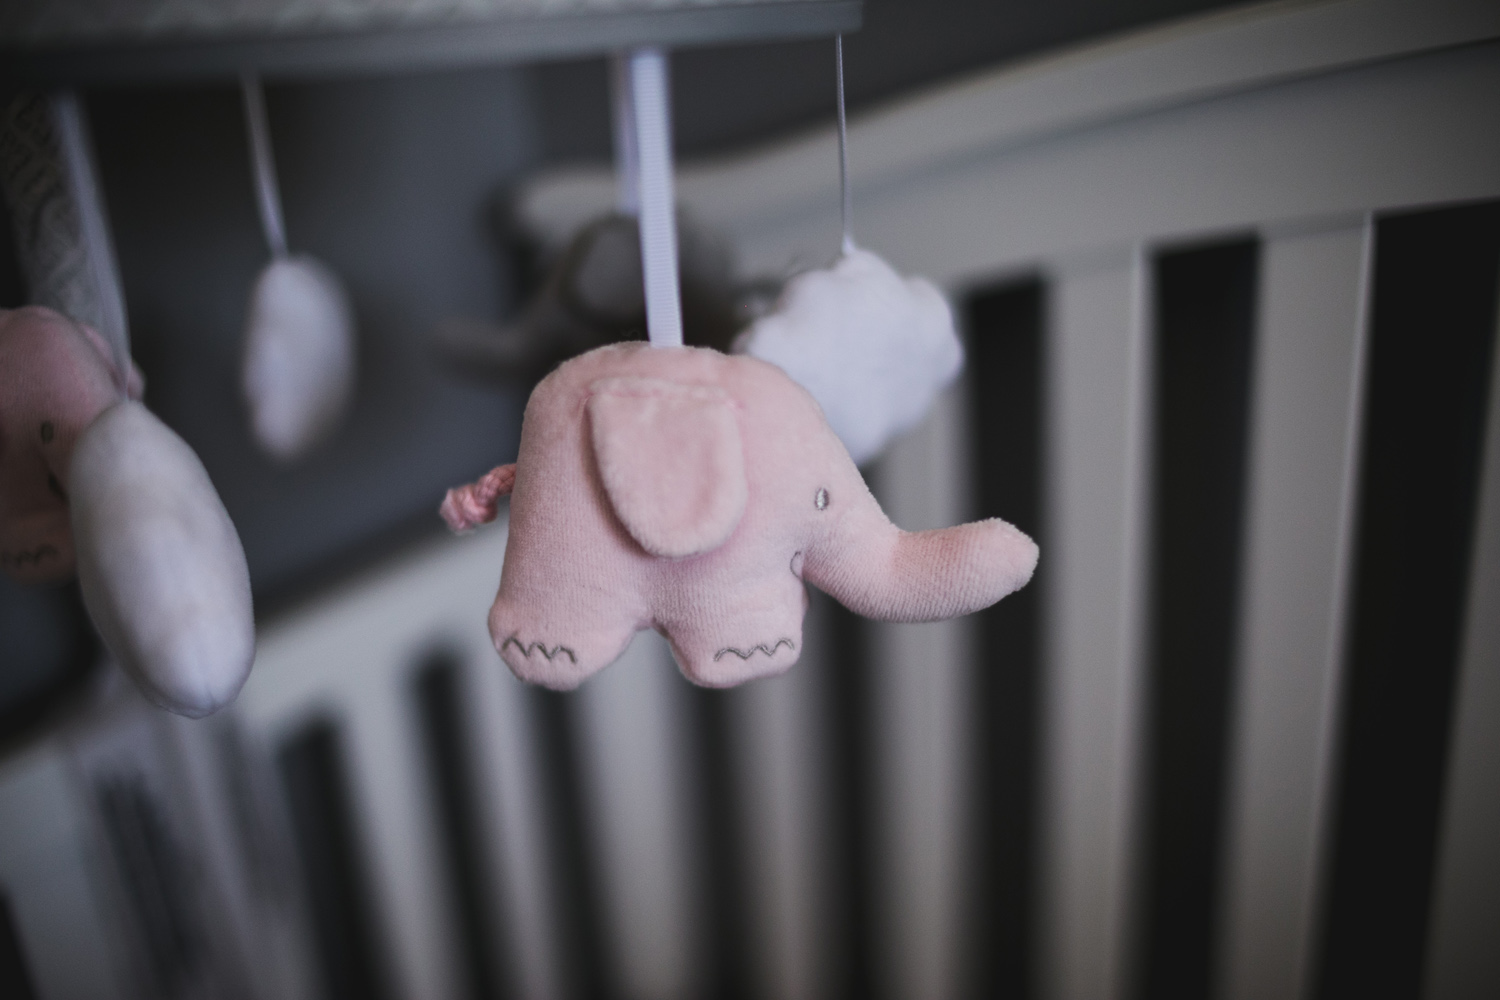 Baby nursery decoration, Newborn Lifestyle Photography in Olathe Kansas. Renee McDaniel Photographer, Manhattan Kansas